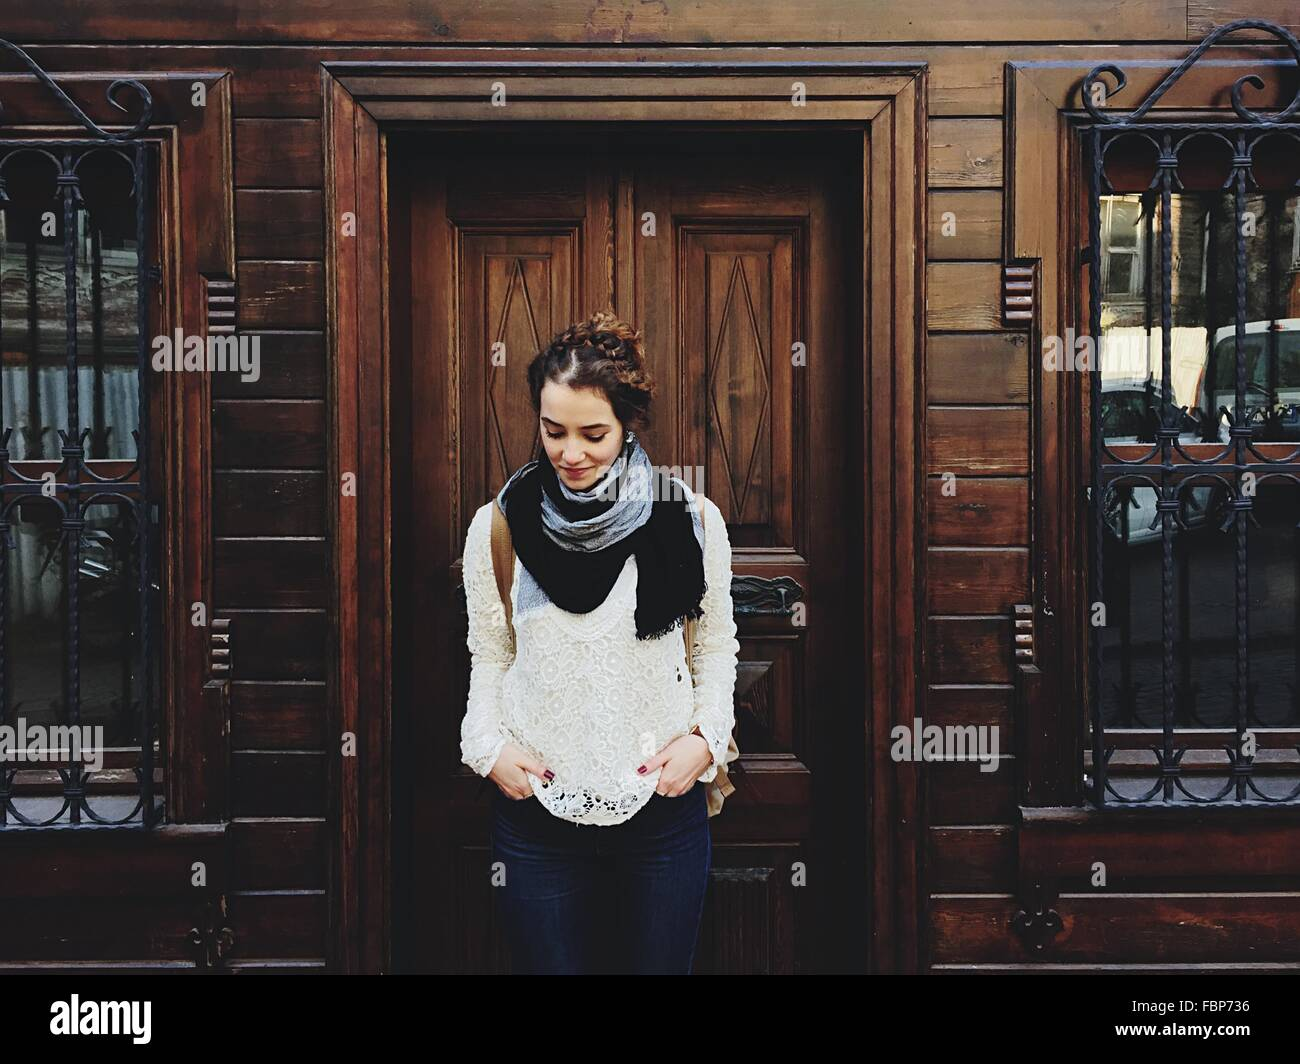 Portrait Of Young Woman In Front Of Wooden Building Stock Photo